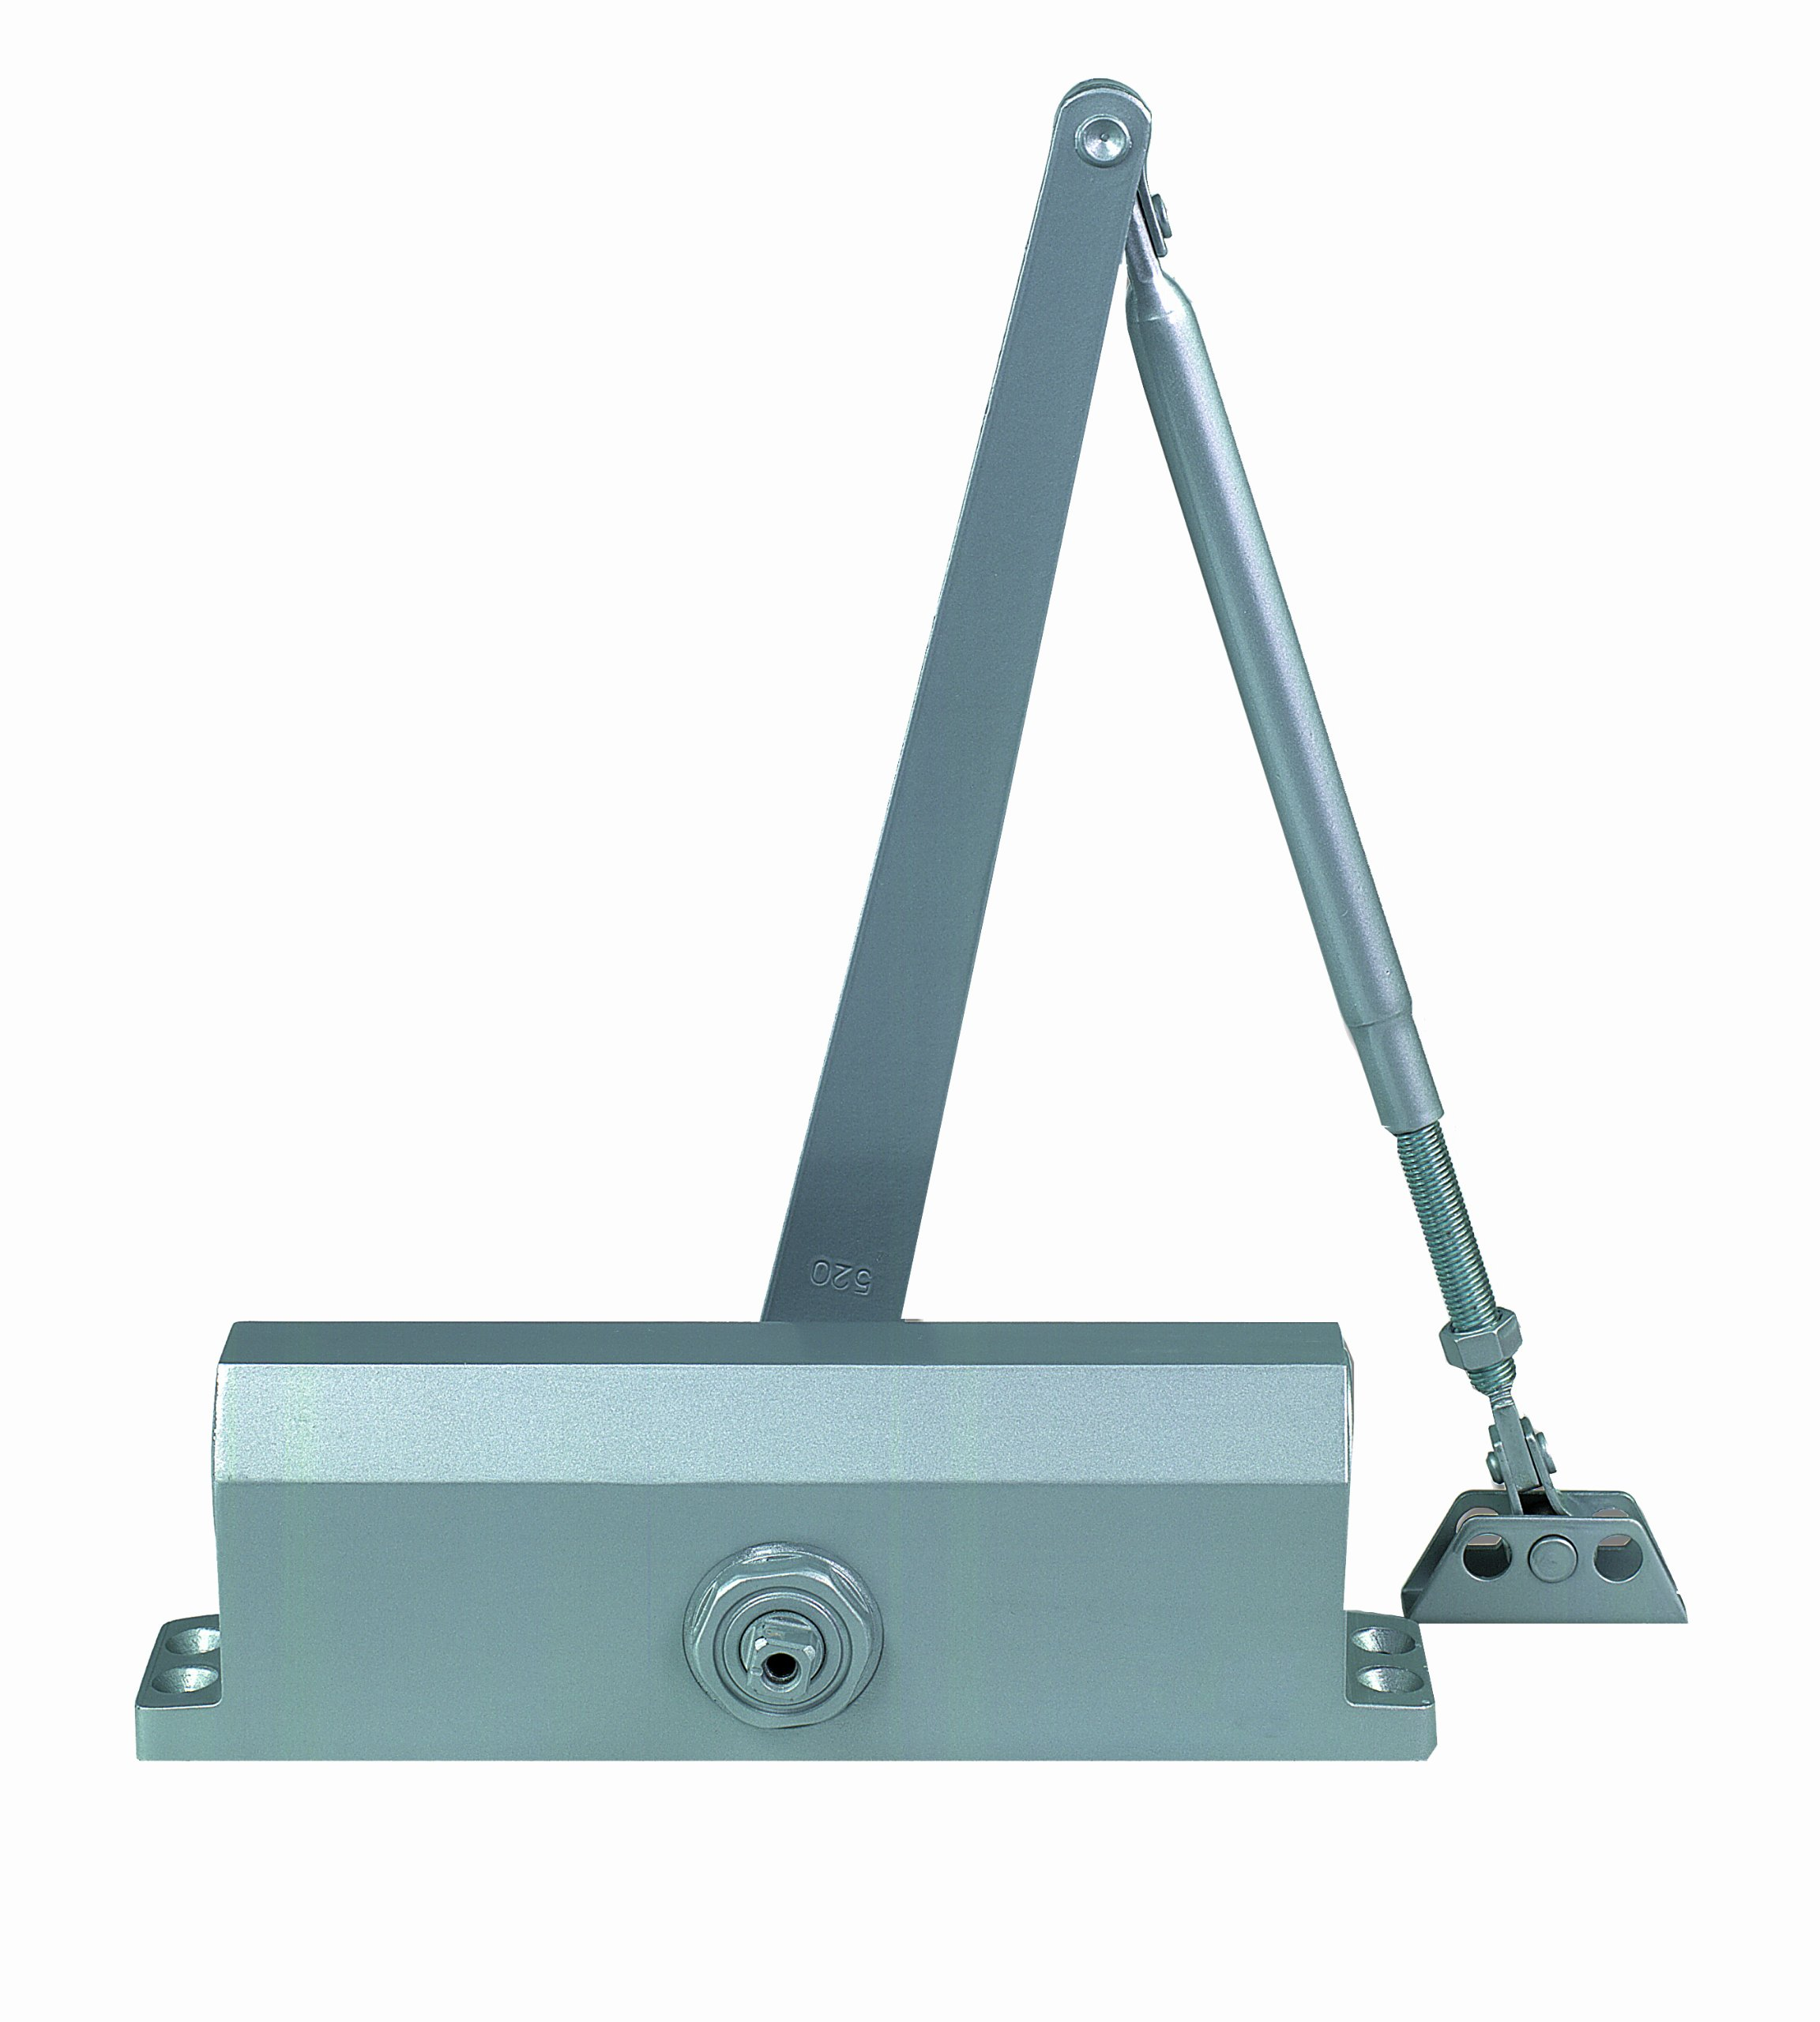 Global Door Controls Compact Commercial Door Closer in Aluminum with Adjustable Spring Tension and Backcheck - Size 4